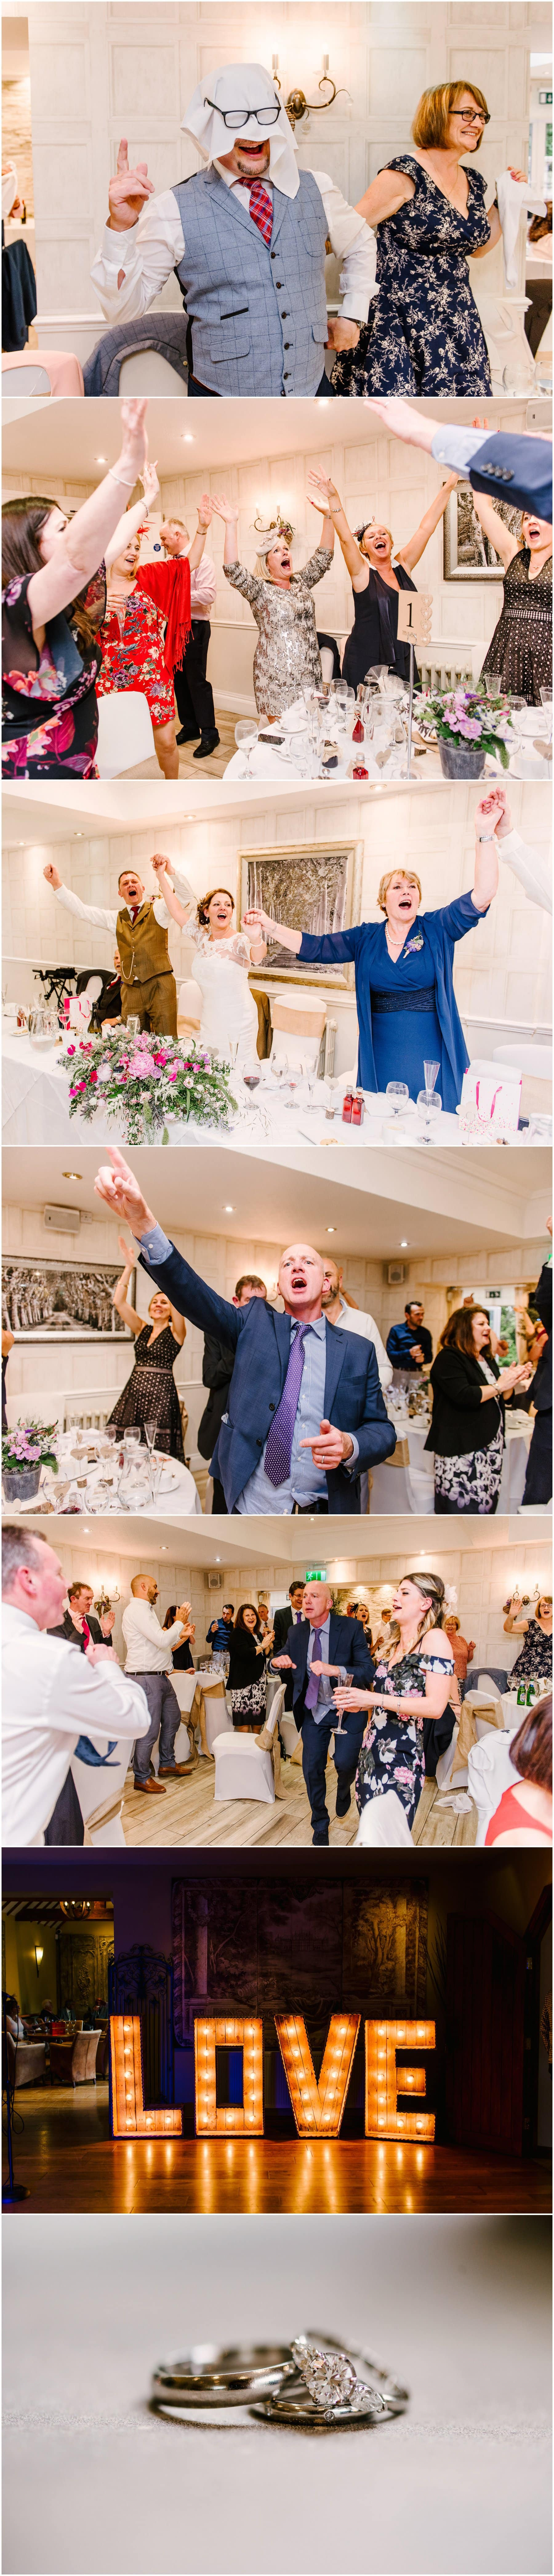 Sarah and Jason's fun and fabulous wedding at Nuthurst Grange Hotel in Solihull, featuring the Singing Waiters with photos by Lisa Carpenter Photography, West Midlands and Birmingham Wedding Photographer shooting cool, contemporary and alternative weddings throughout the West Midlands and nationwide.